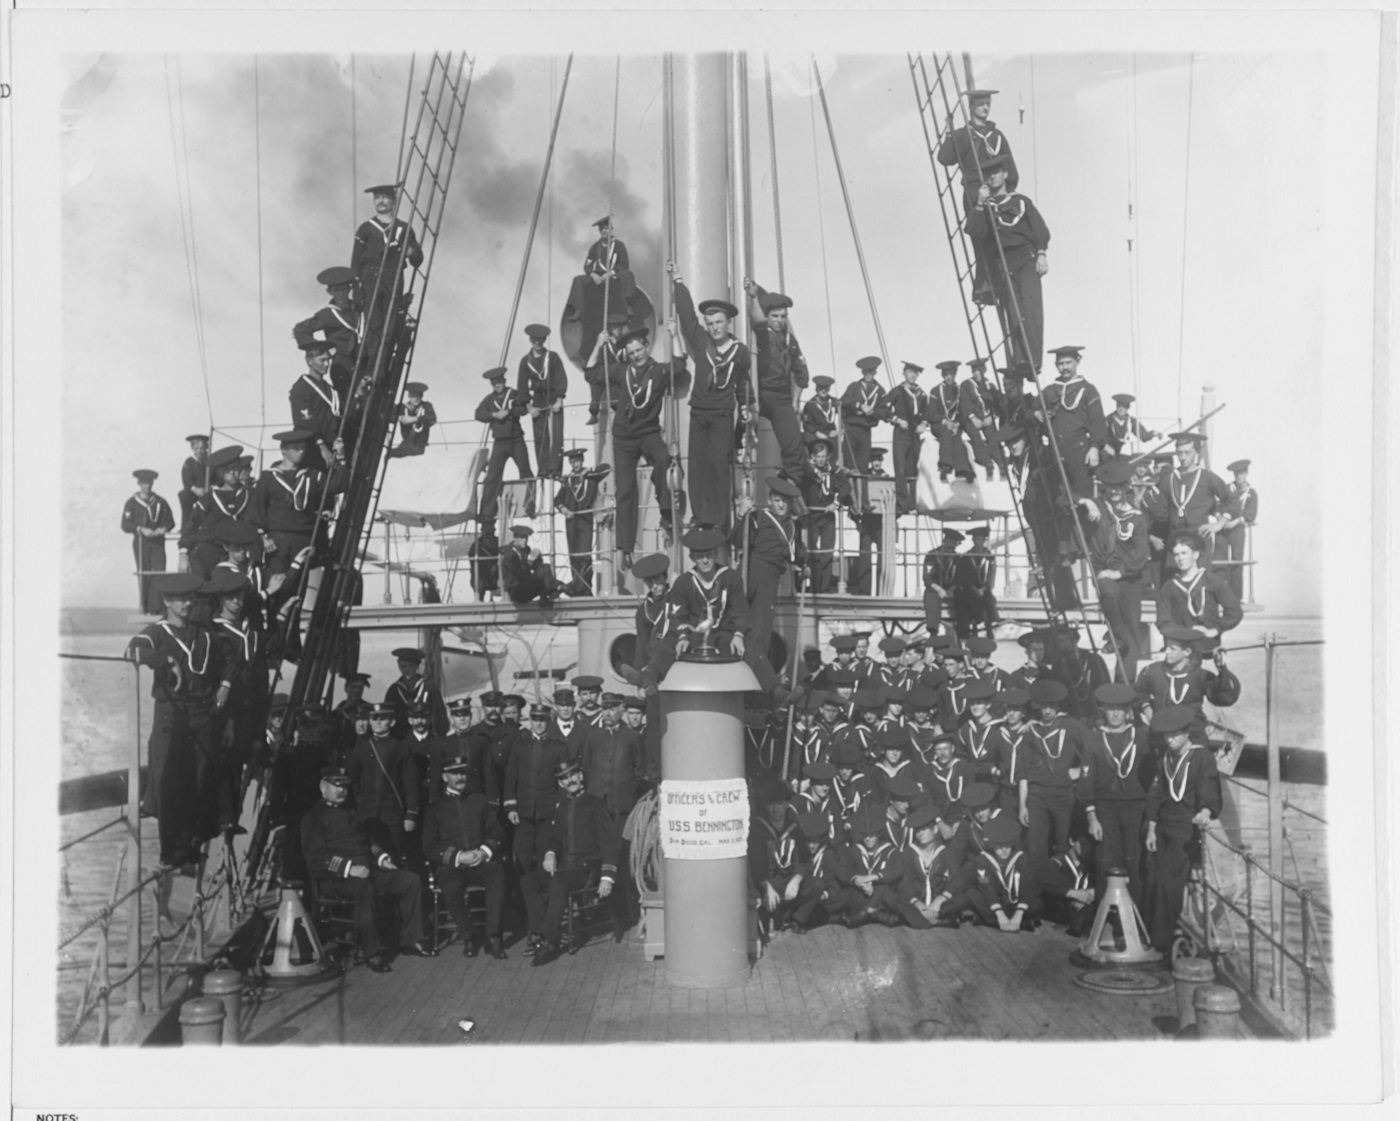 (Gunboat # 4) Ship's officers and crew posed on deck and in her foremast rigging, at San Diego, California, 3 March 1905. Tragically, within just four months, many of these men in the photo would be dead. Courtesy of the Historical Collection, Union Title Insurance Company, San Diego, California. U.S. Naval History and Heritage Command Photograph. Catalog #: NH 56382